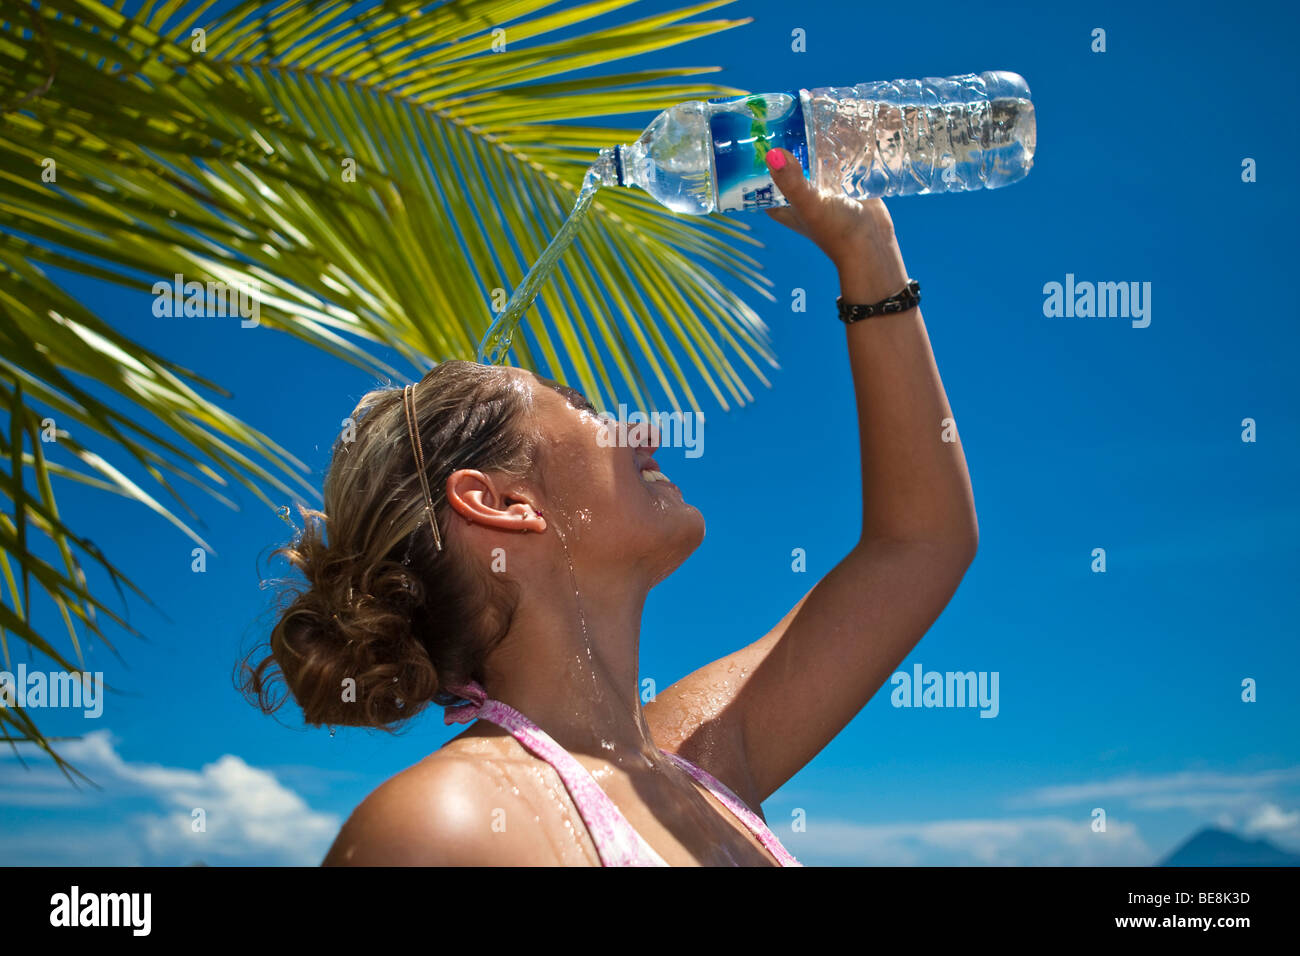 Young woman on the beach pouring water from a water bottle over the head, Indonesia, South-East Asia - Stock Image